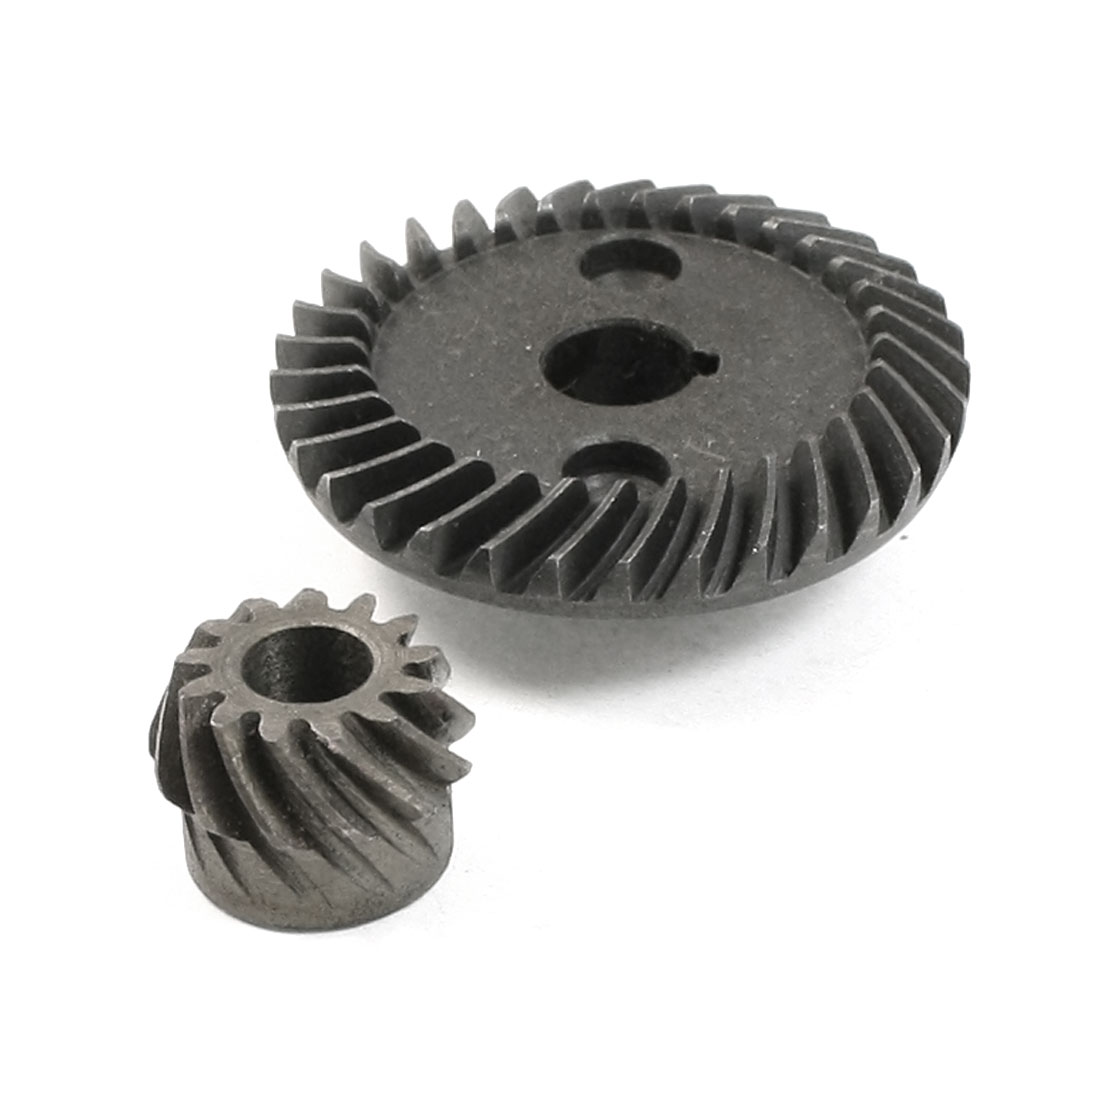 Repair Part Spiral Bevel Gear Pinion Set for Dragon 03-100 Angle Grinder